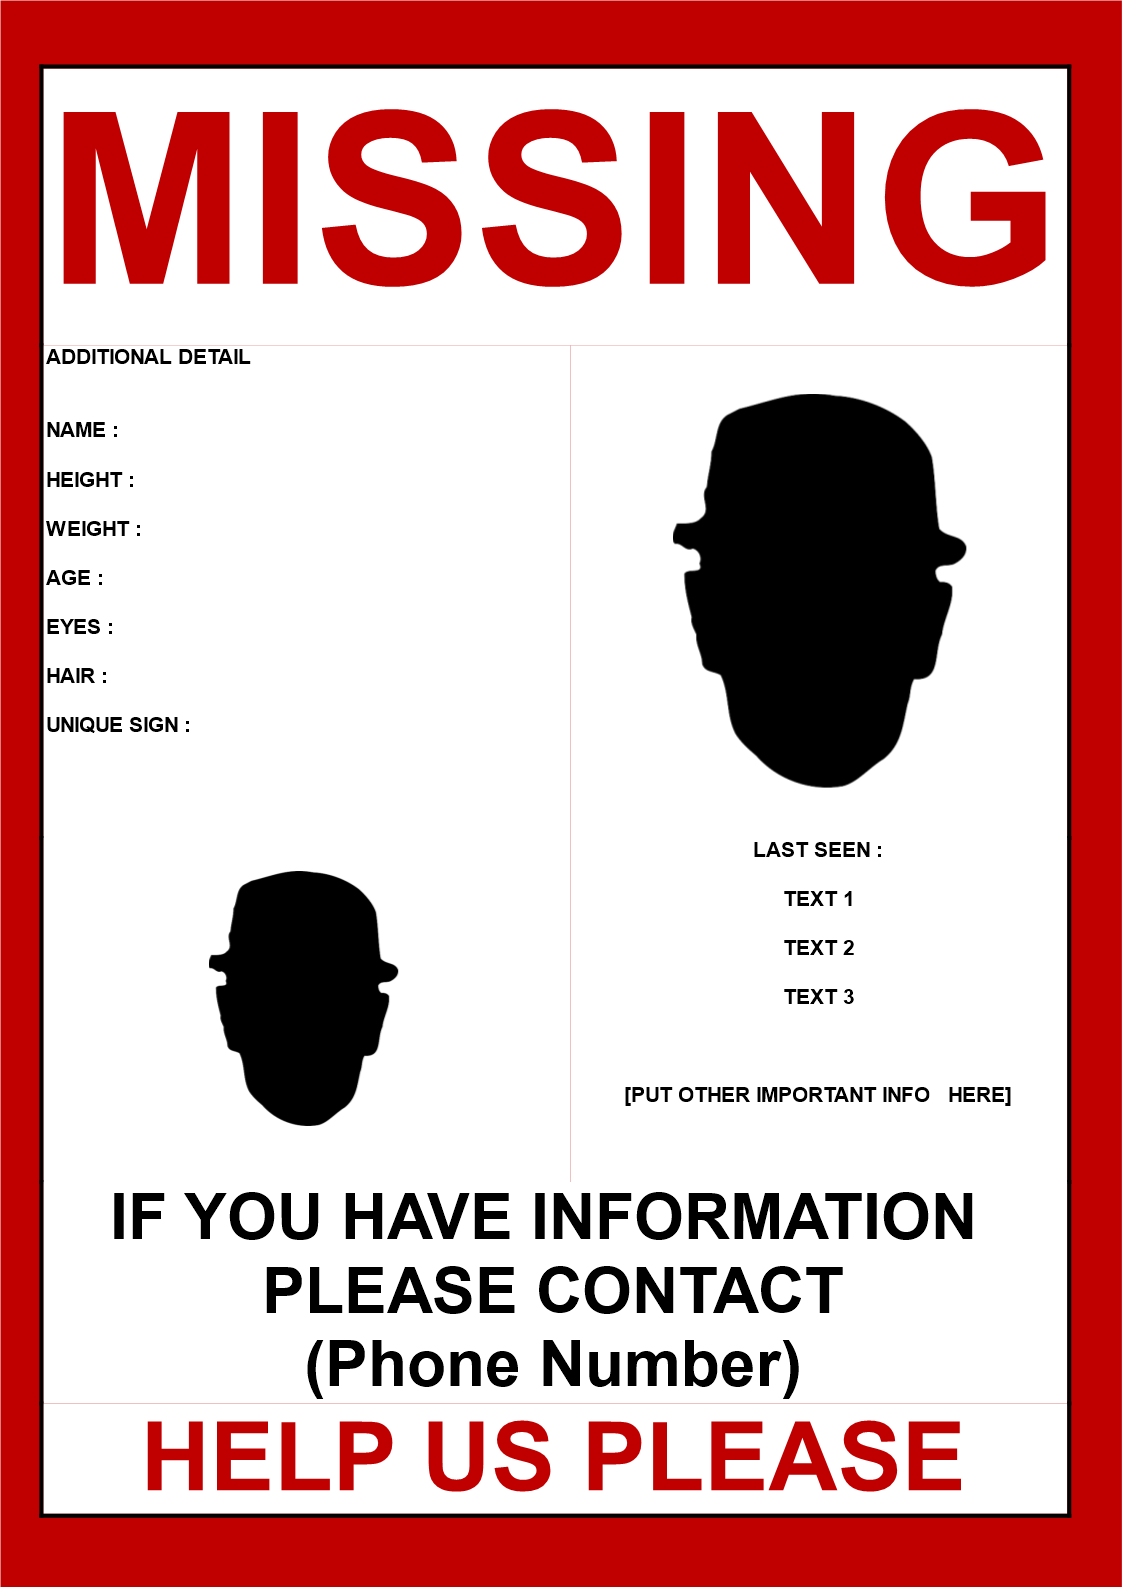 Missing person poster template 2 images - Download this Missing ...